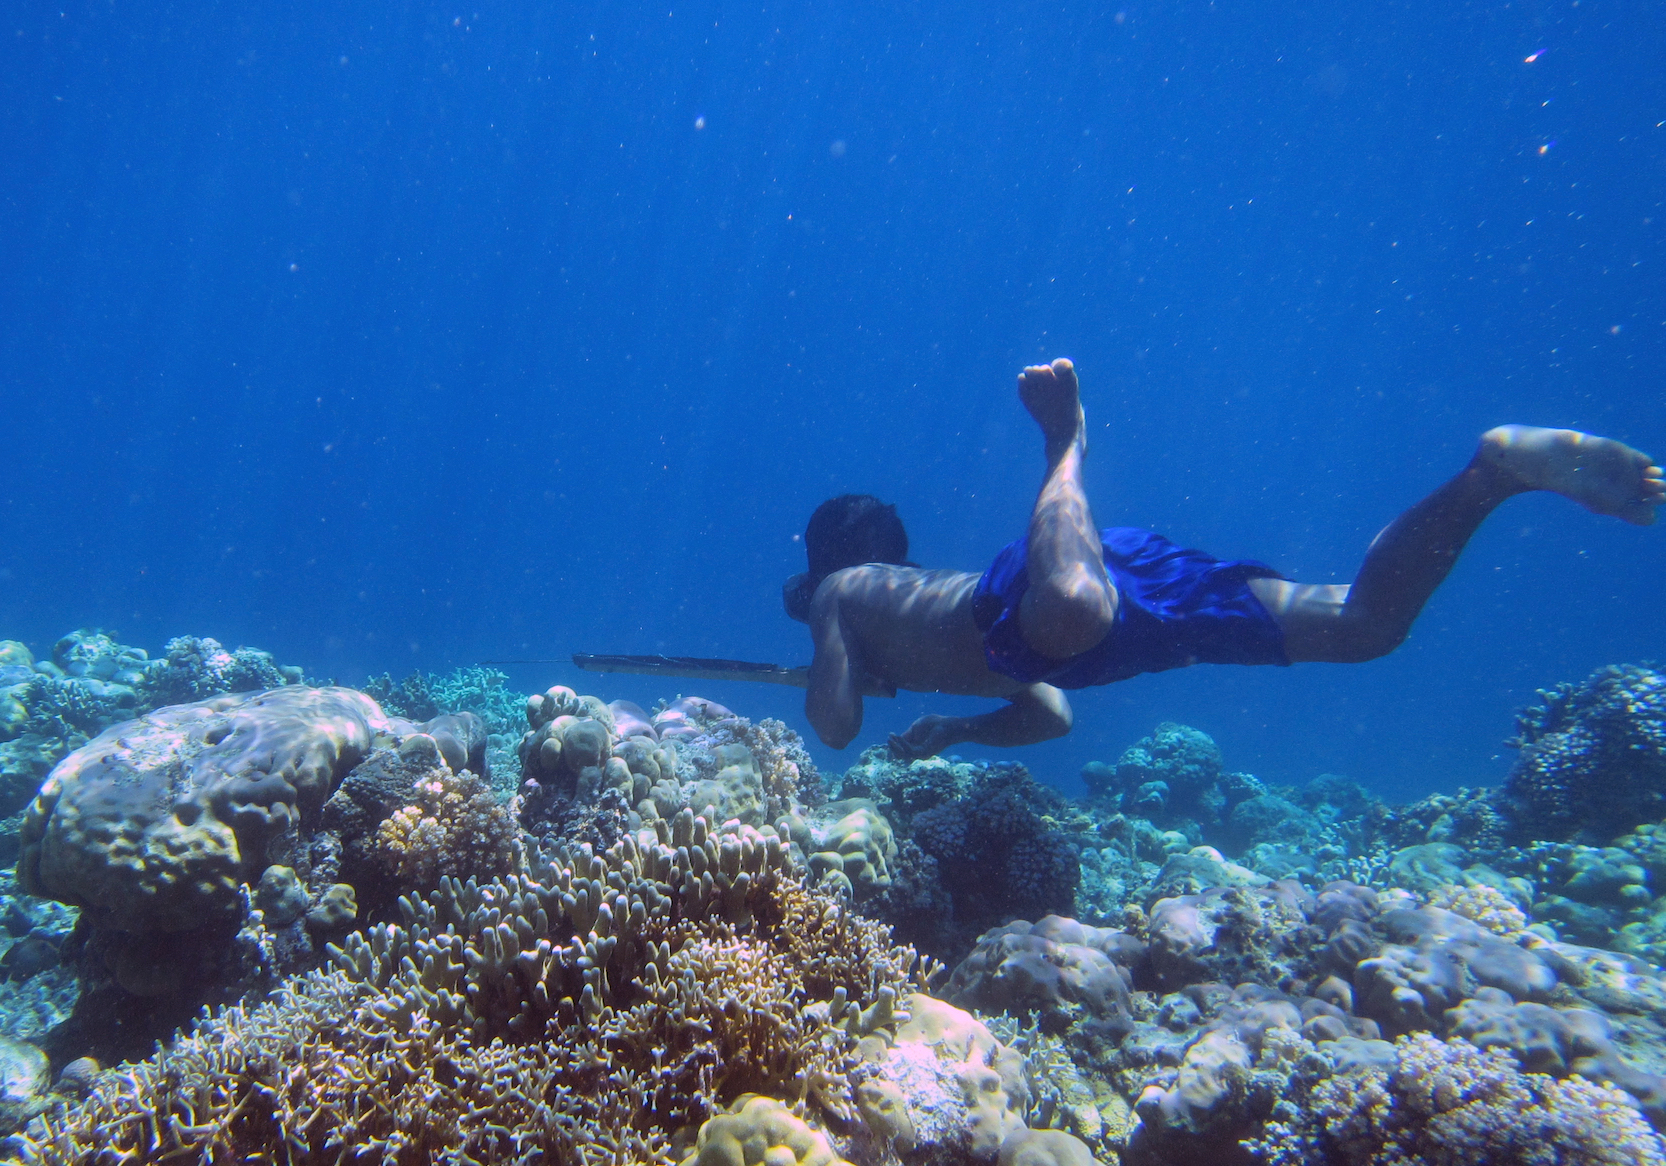 New research published in the journal Cell has found evidence that the Bajau people of Indonesia have genetically adapted to diving, a scientific first.